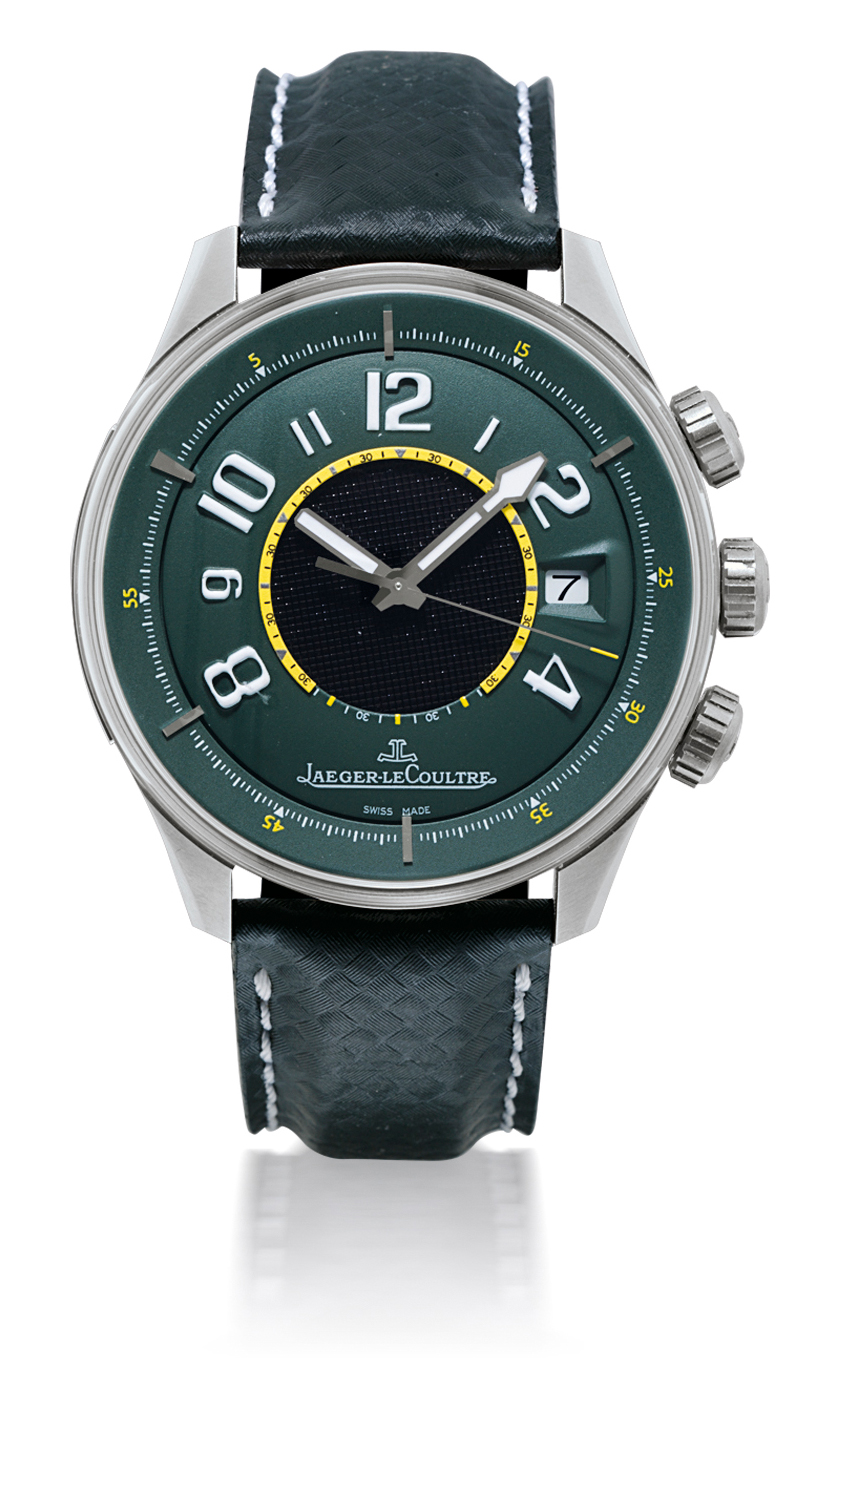 JAEGER-LECOULTRE, ASTON MARTIN AMVOX1  TITANIUM AUTOMATIC WRISTWATCH WITH ALARM FUNCTION AND DATE DISPLAY, LIMITED EDITION OF 500